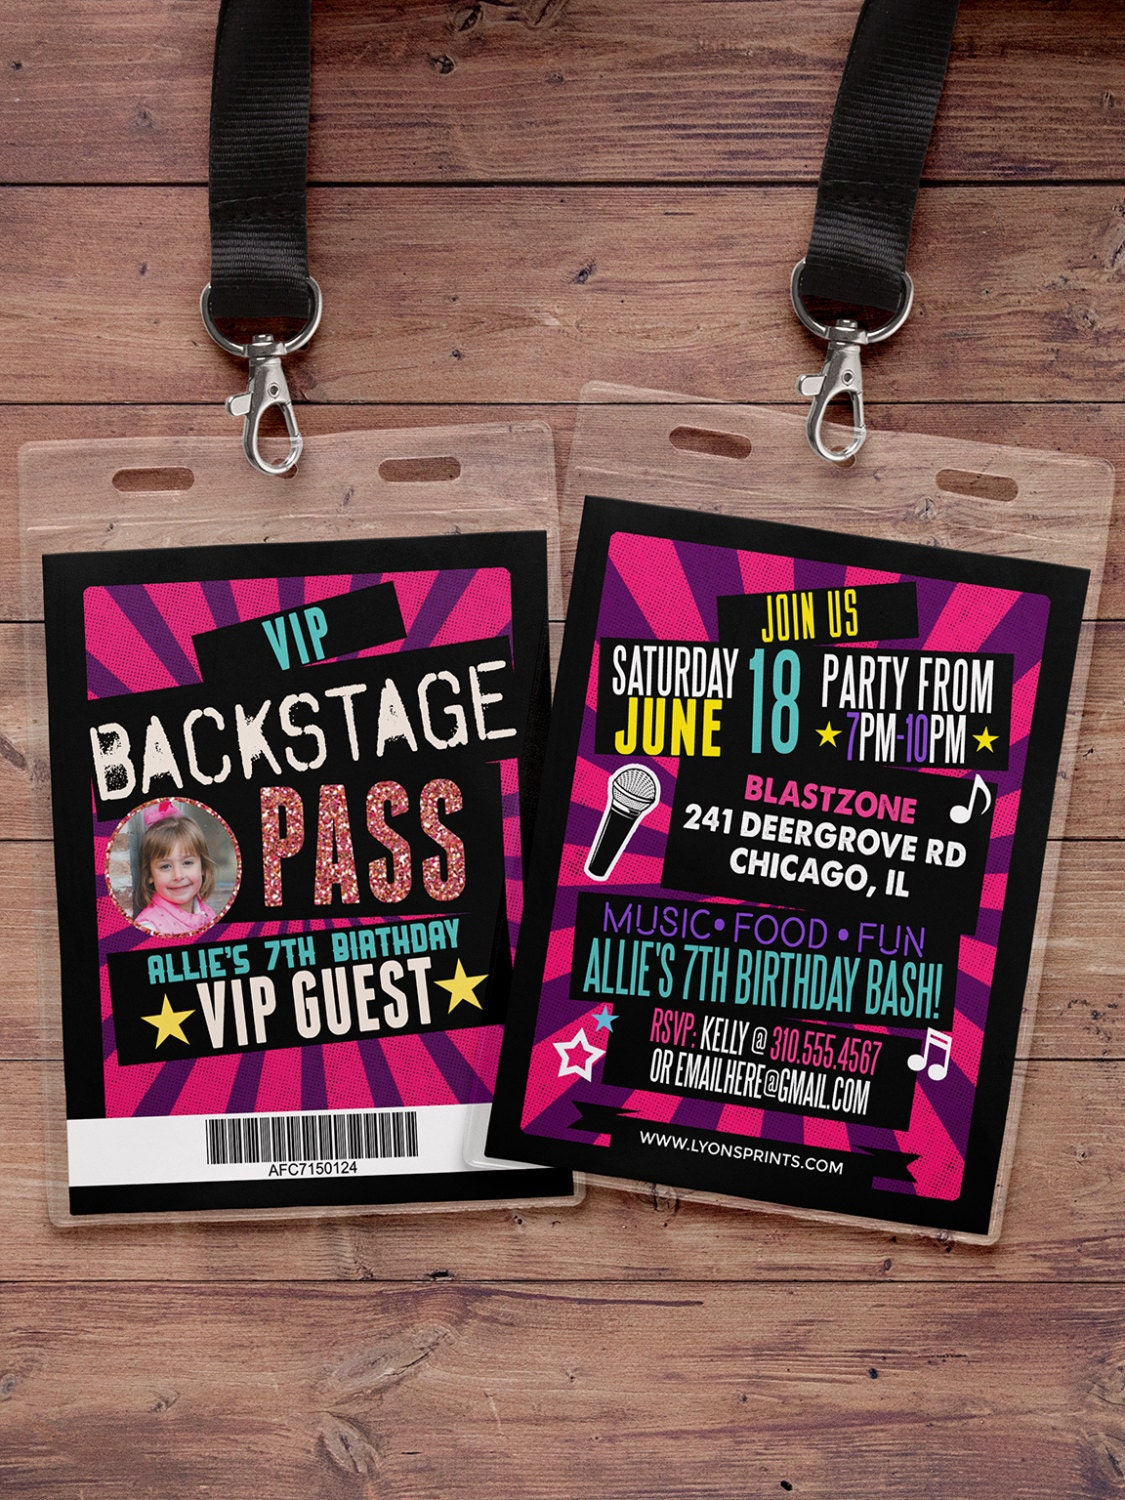 birthday invitation rock star VIP PASS backstage pass concert – Concert Ticket Birthday Invitations